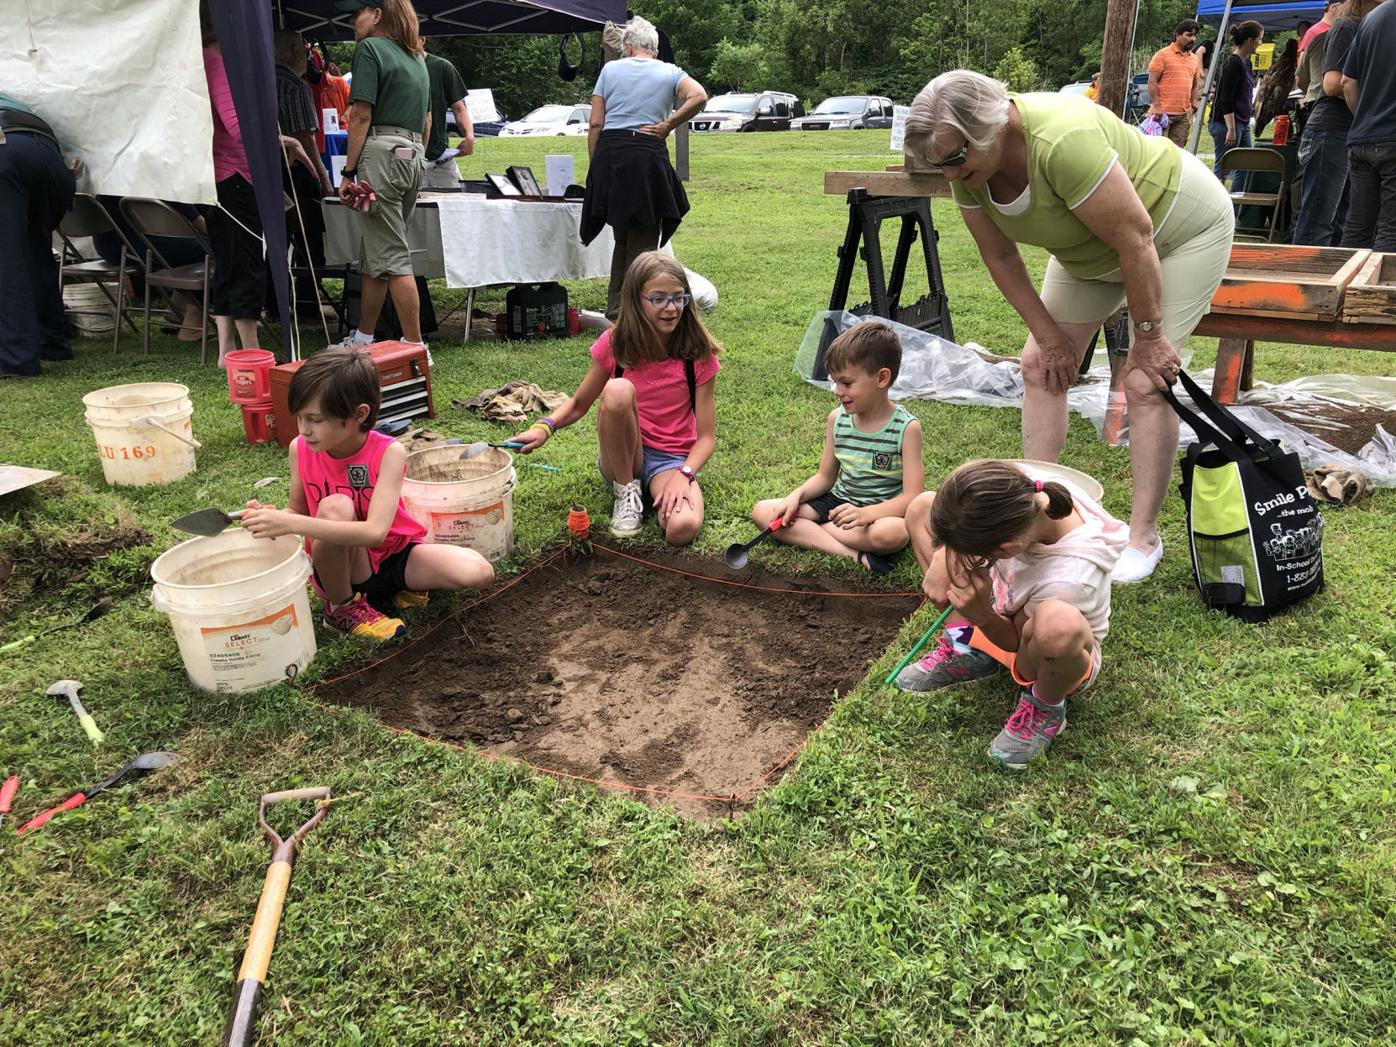 16th annual River Day in Tunkhannock